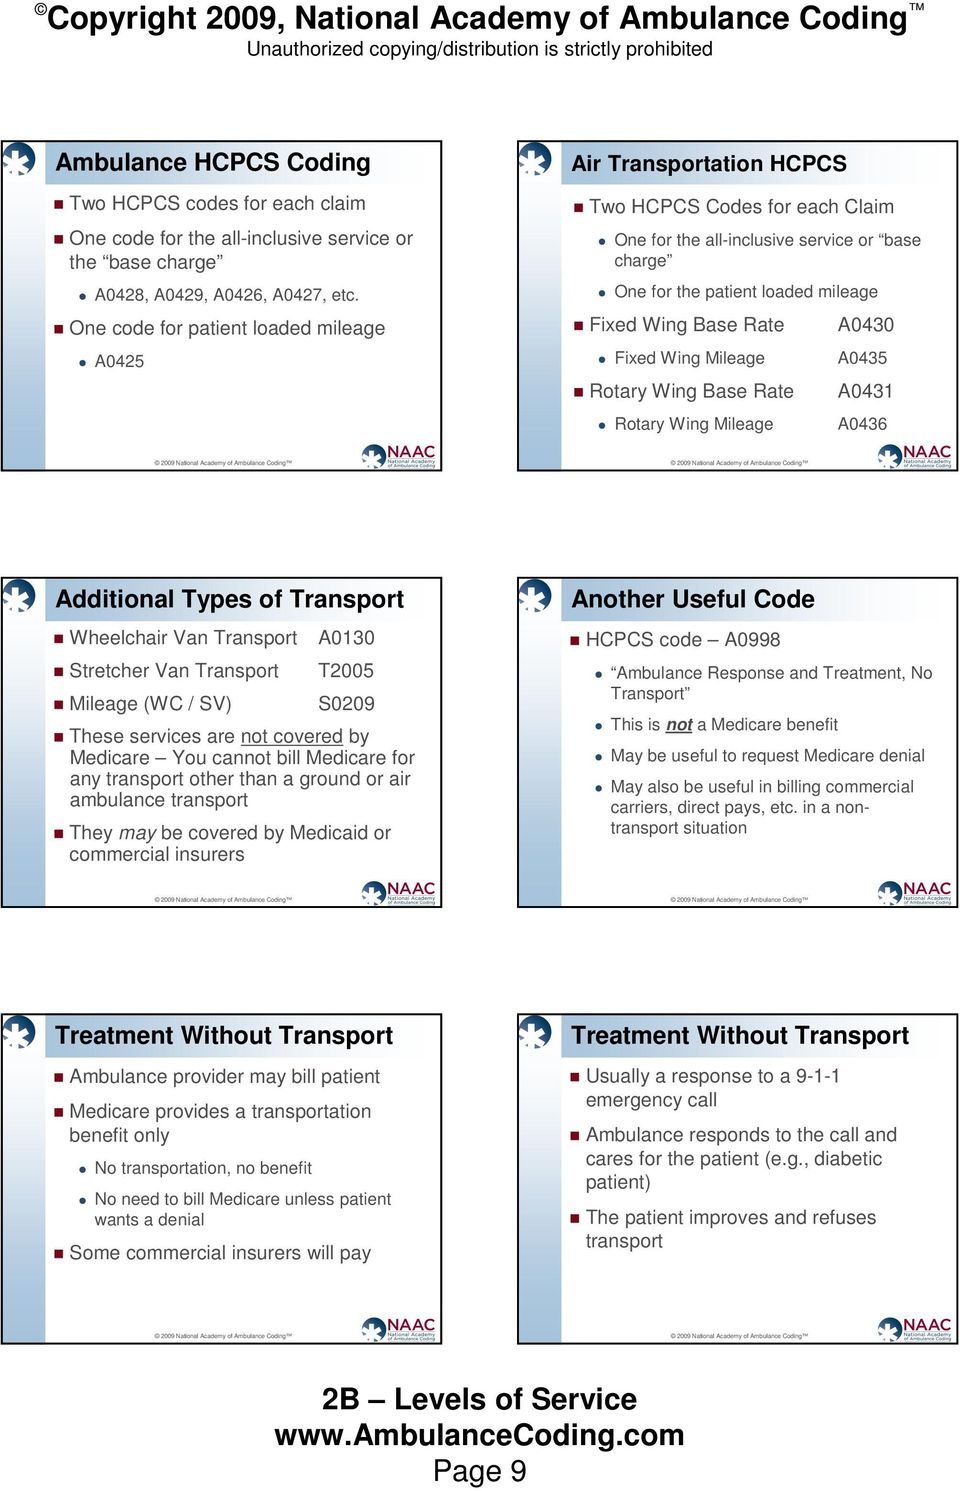 Rate Fixed Wing Mileage Rotary Wing Base Rate Rotary Wing Mileage A0430 A0435 A0431 A0436 Additional Types of Transport Wheelchair Van Transport Stretcher Van Transport Mileage (WC / SV) A0130 T2005